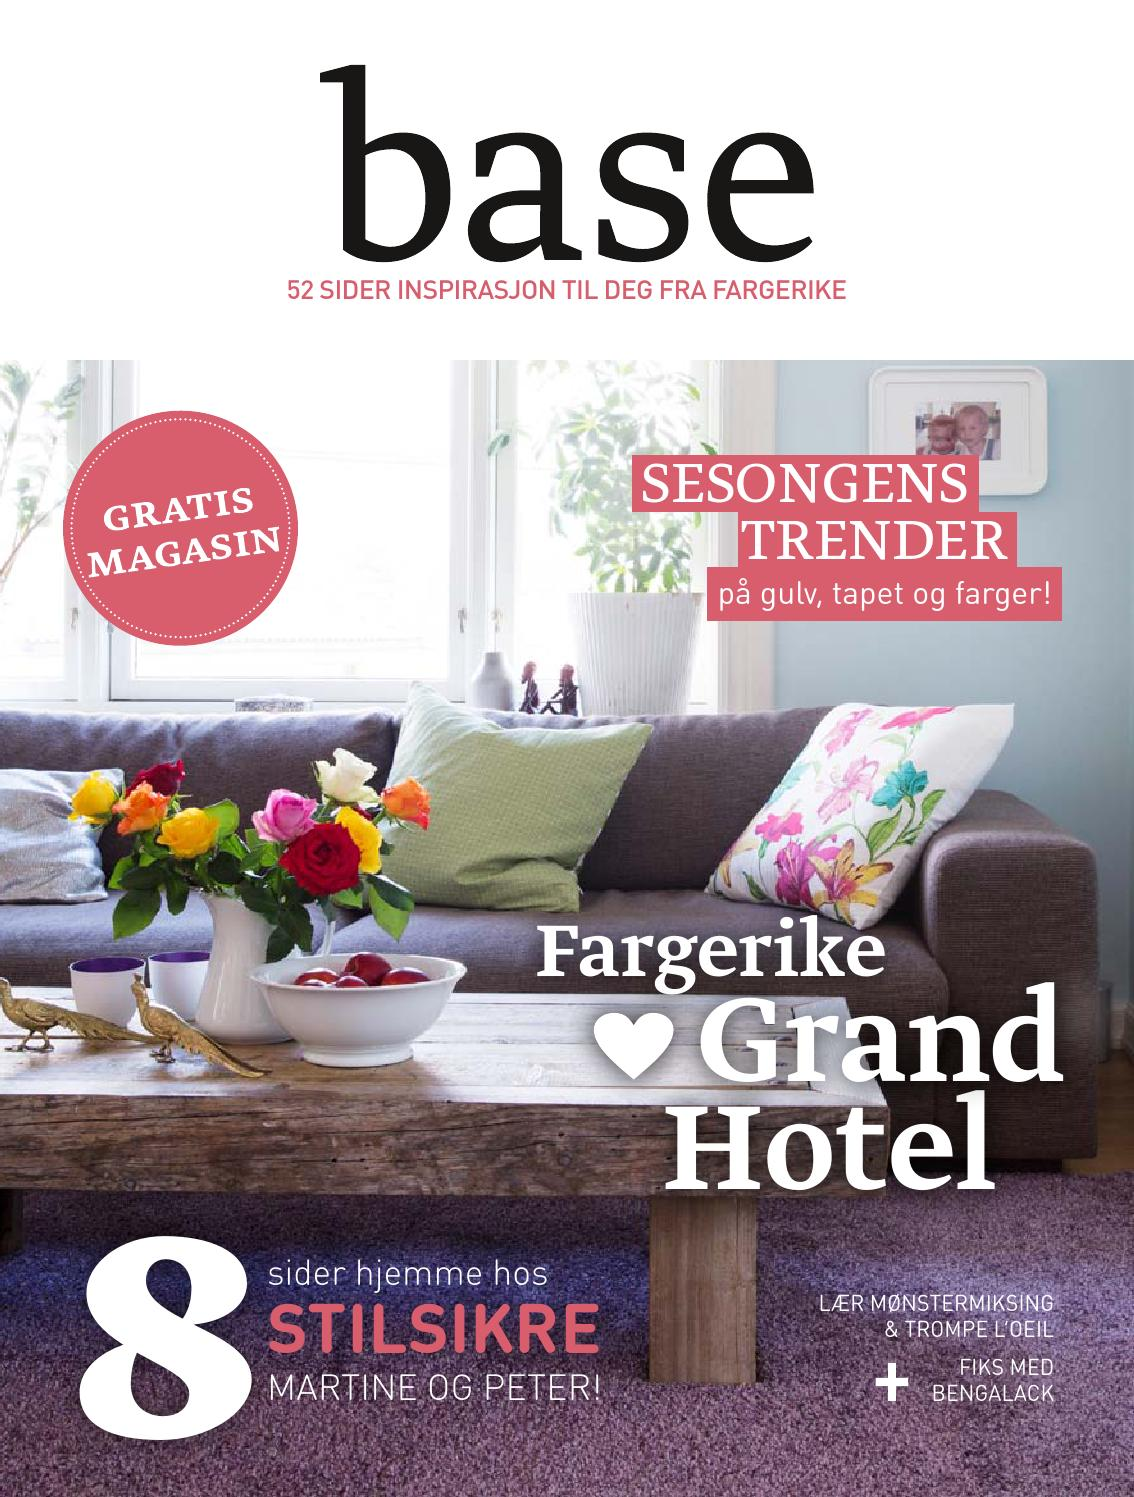 Fr Base 07 Lowres By Fargerike Norge Issuu